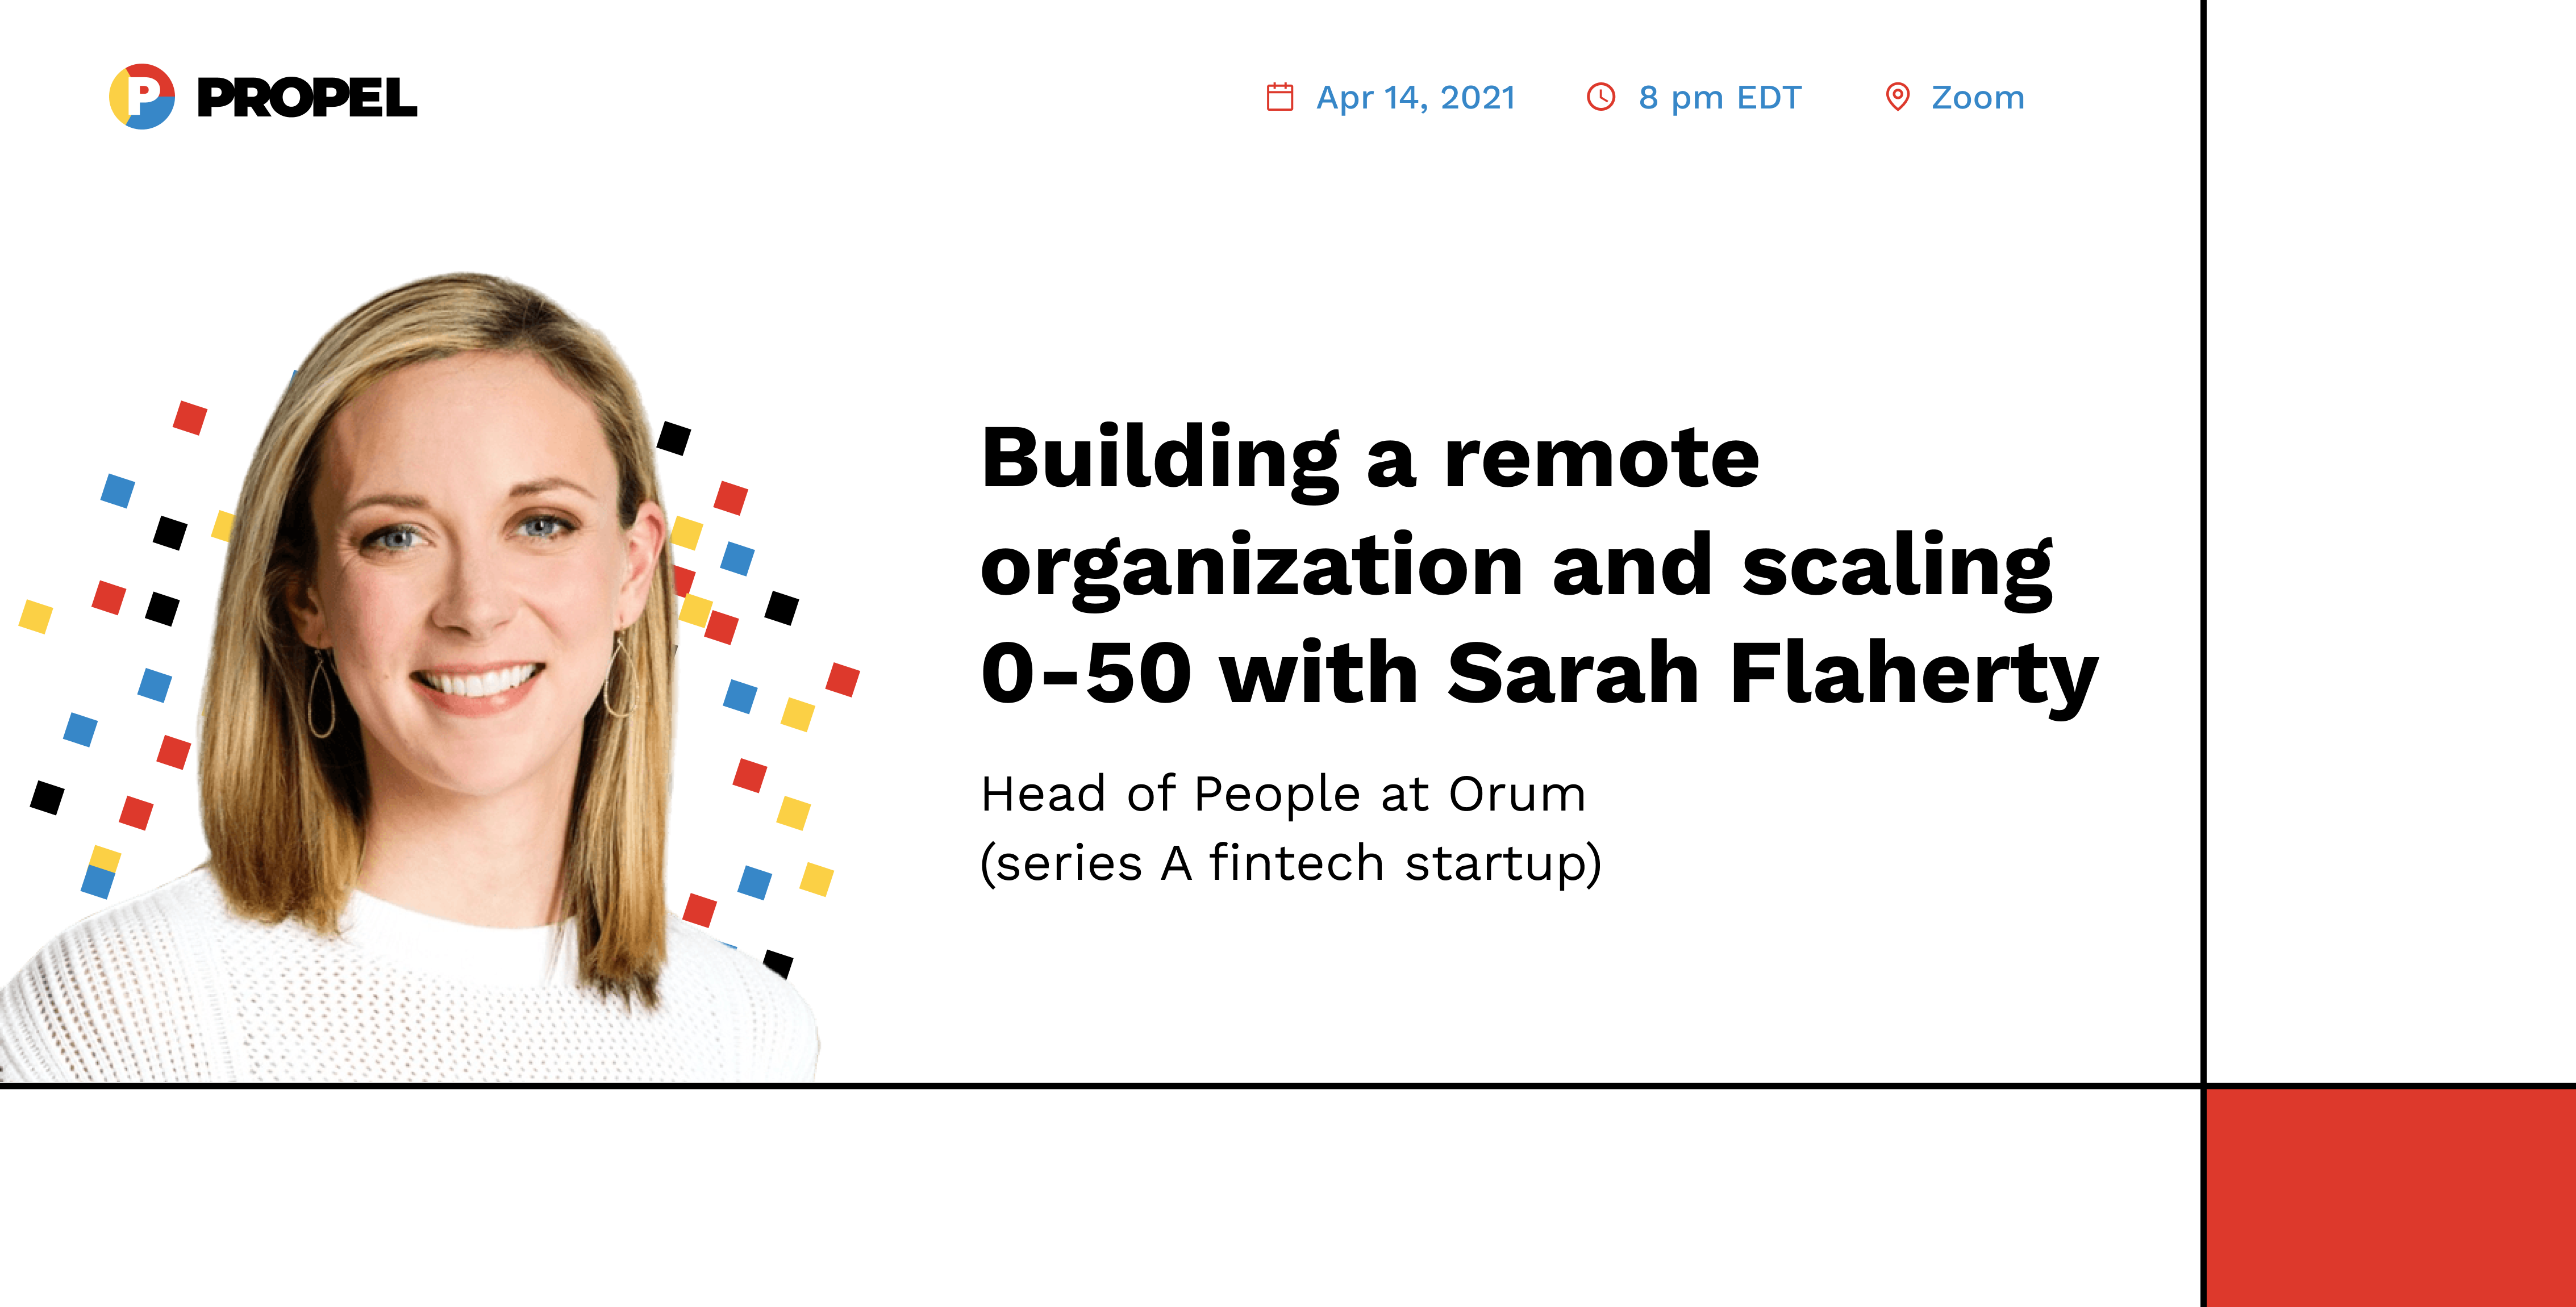 Building a remote organization and scaling 0-50 with Sarah Flaherty, Head of People at Orum (seed stage fintech)